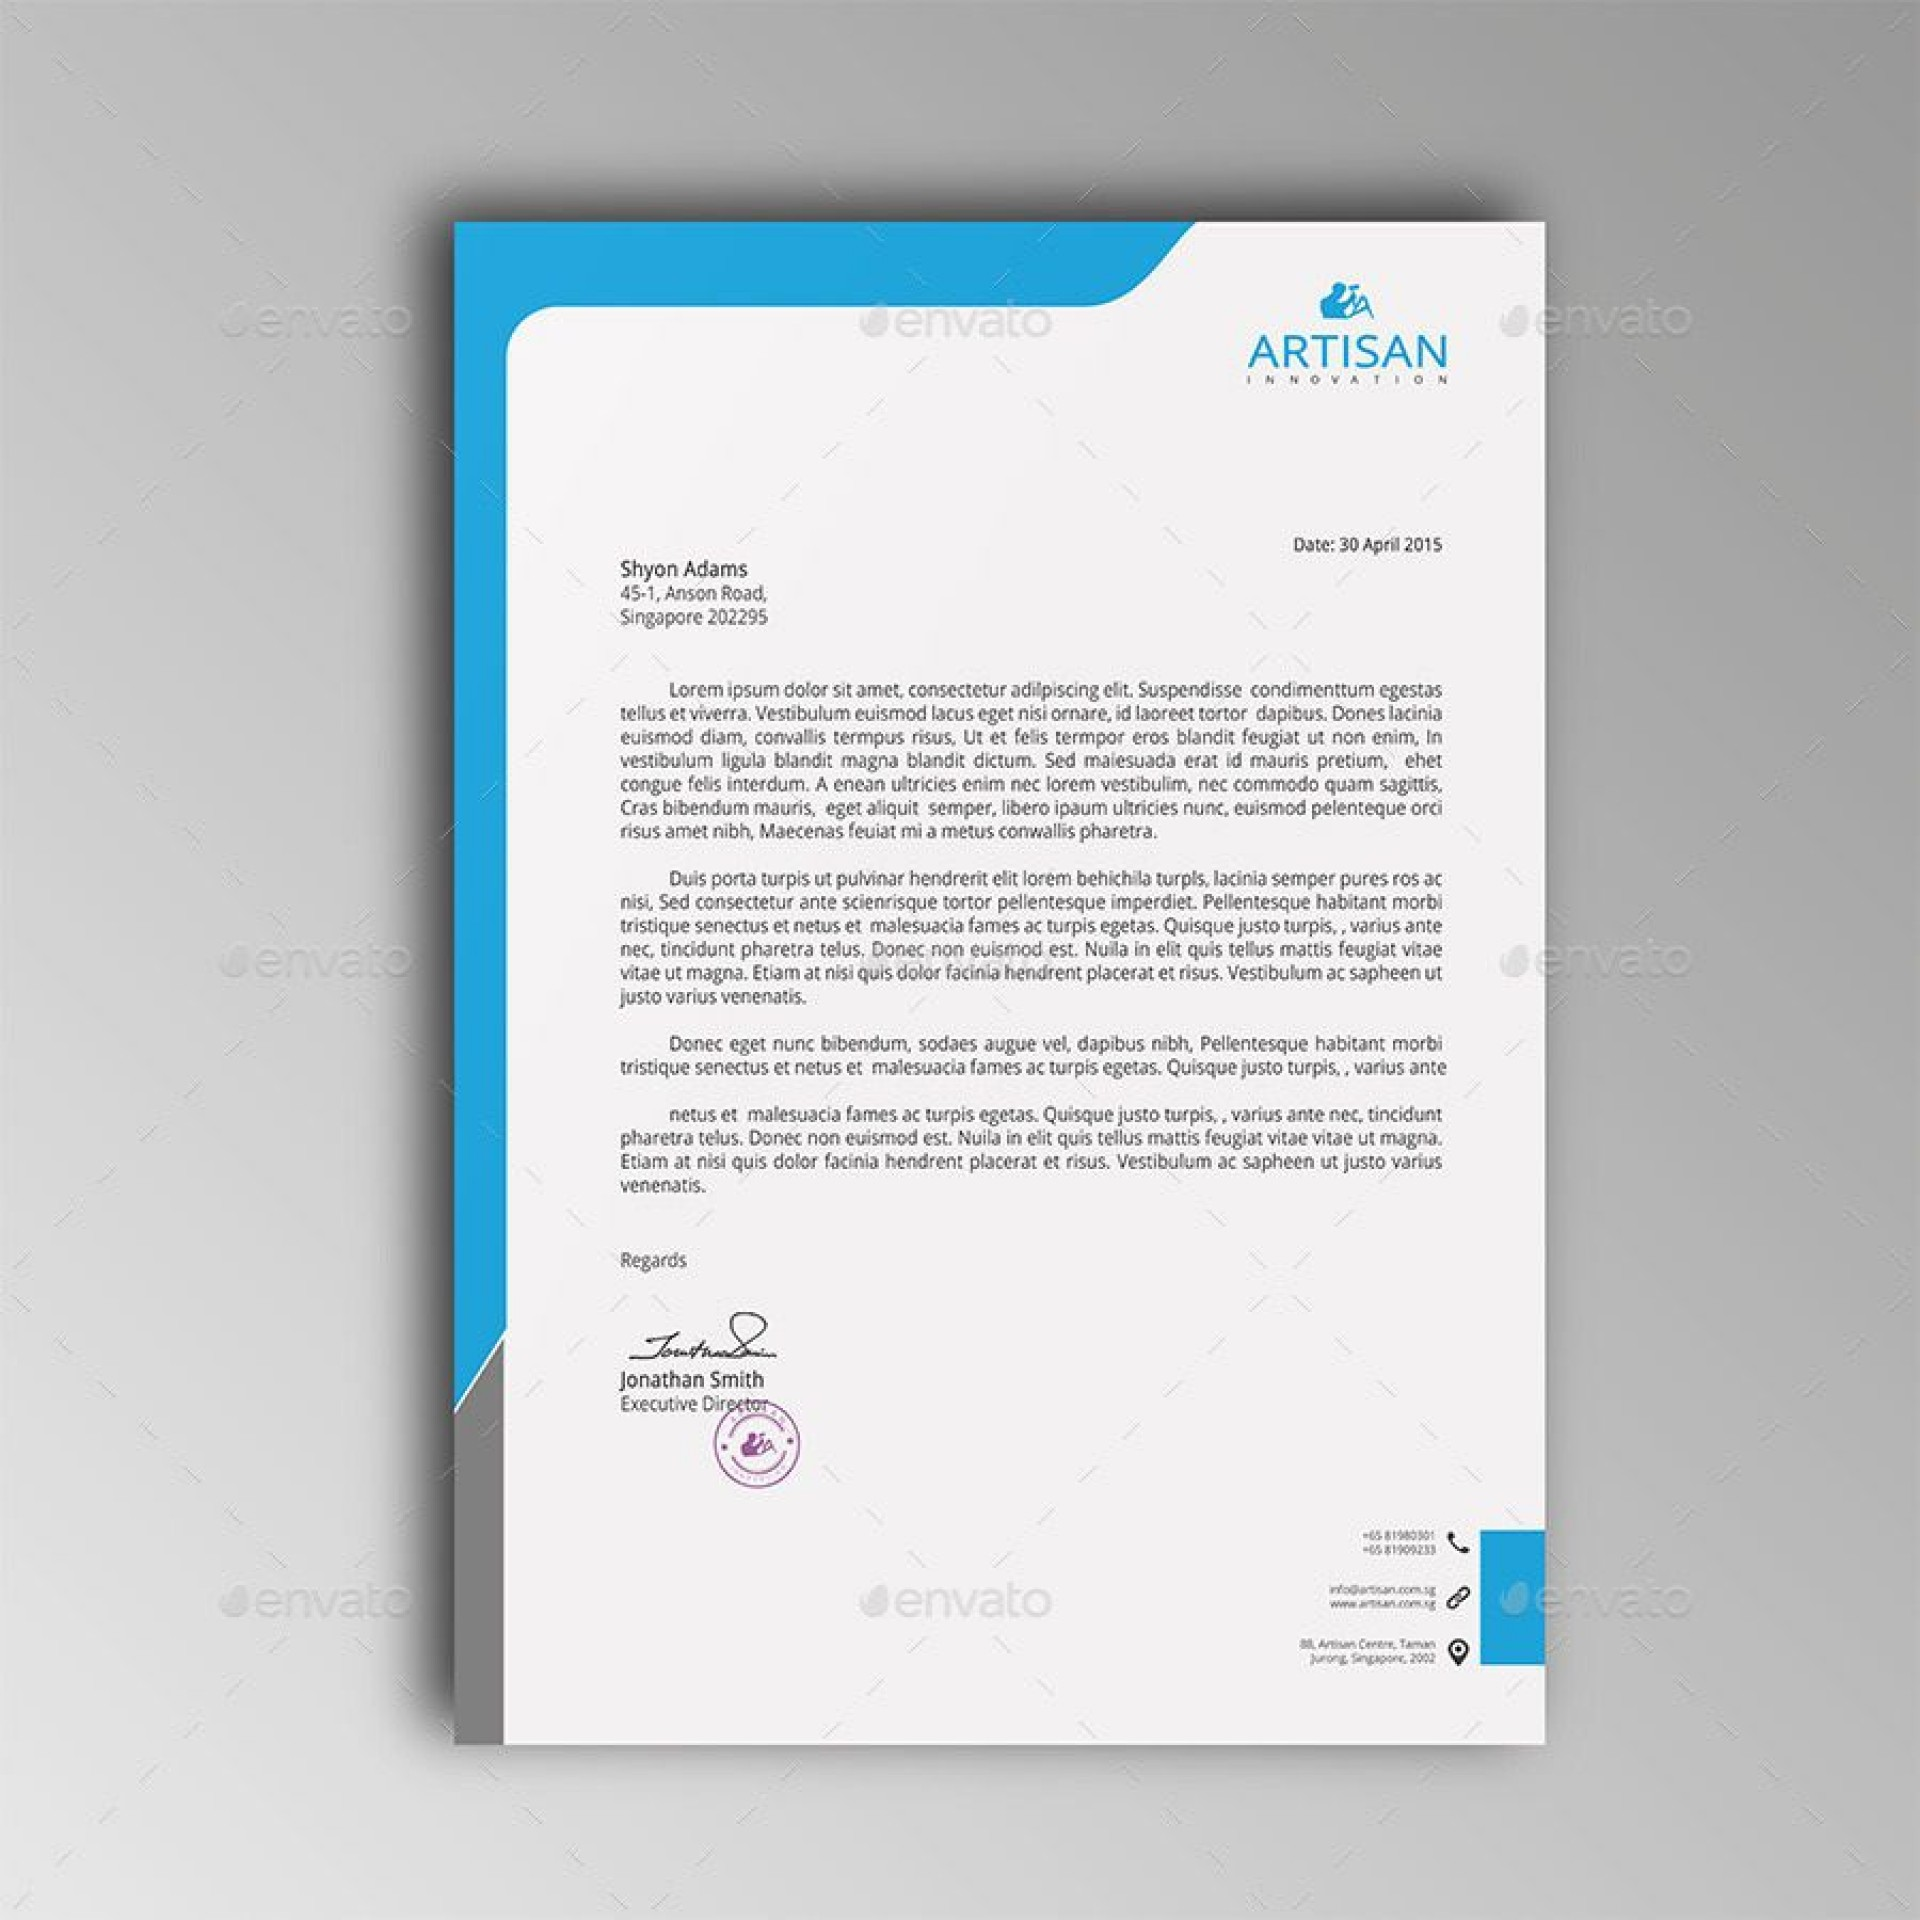 007 Imposing Letterhead Template Free Download Ai High Definition  File1920